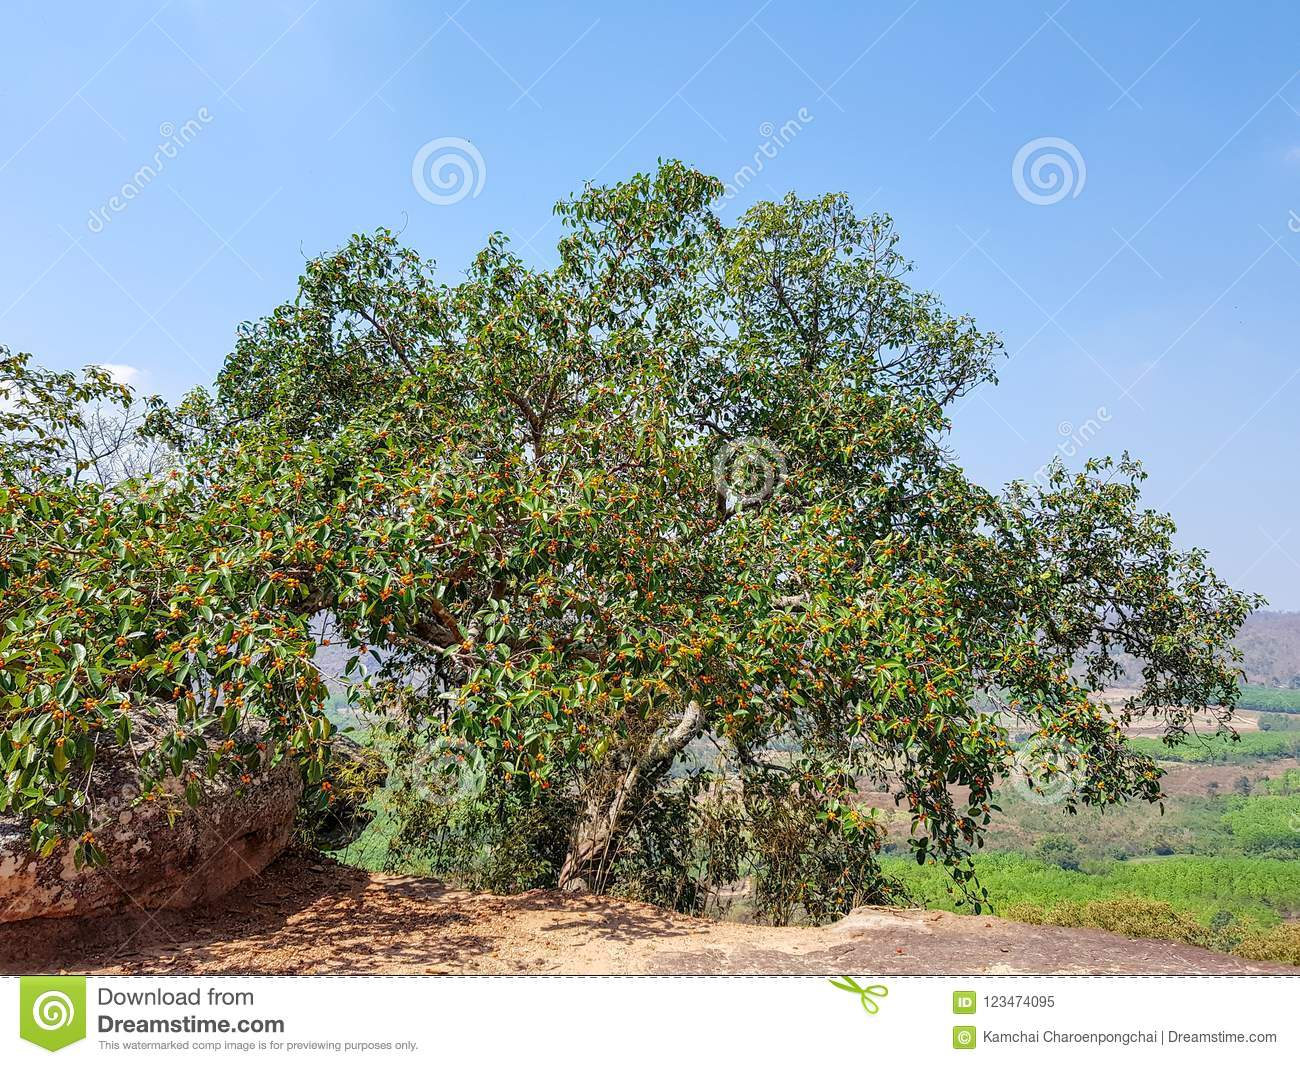 Garcinia cowa, an evergreen trees and shrubs usually found across tropical forest